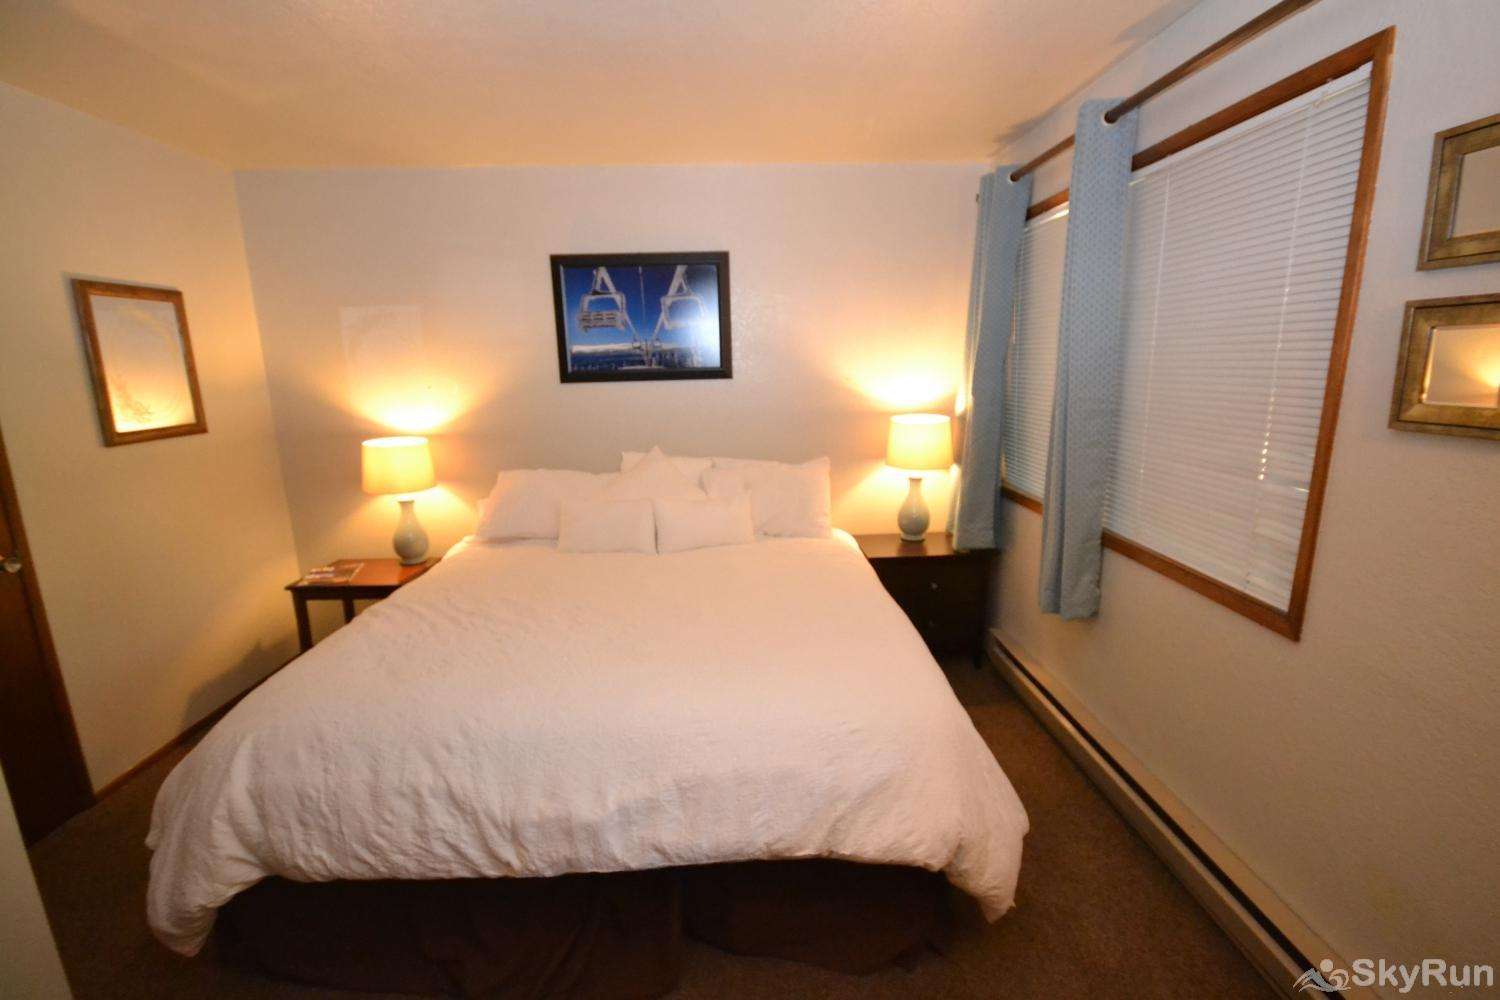 Ptarmigan Village 86 Second bedroom with King sized bed and a door to an outside deck